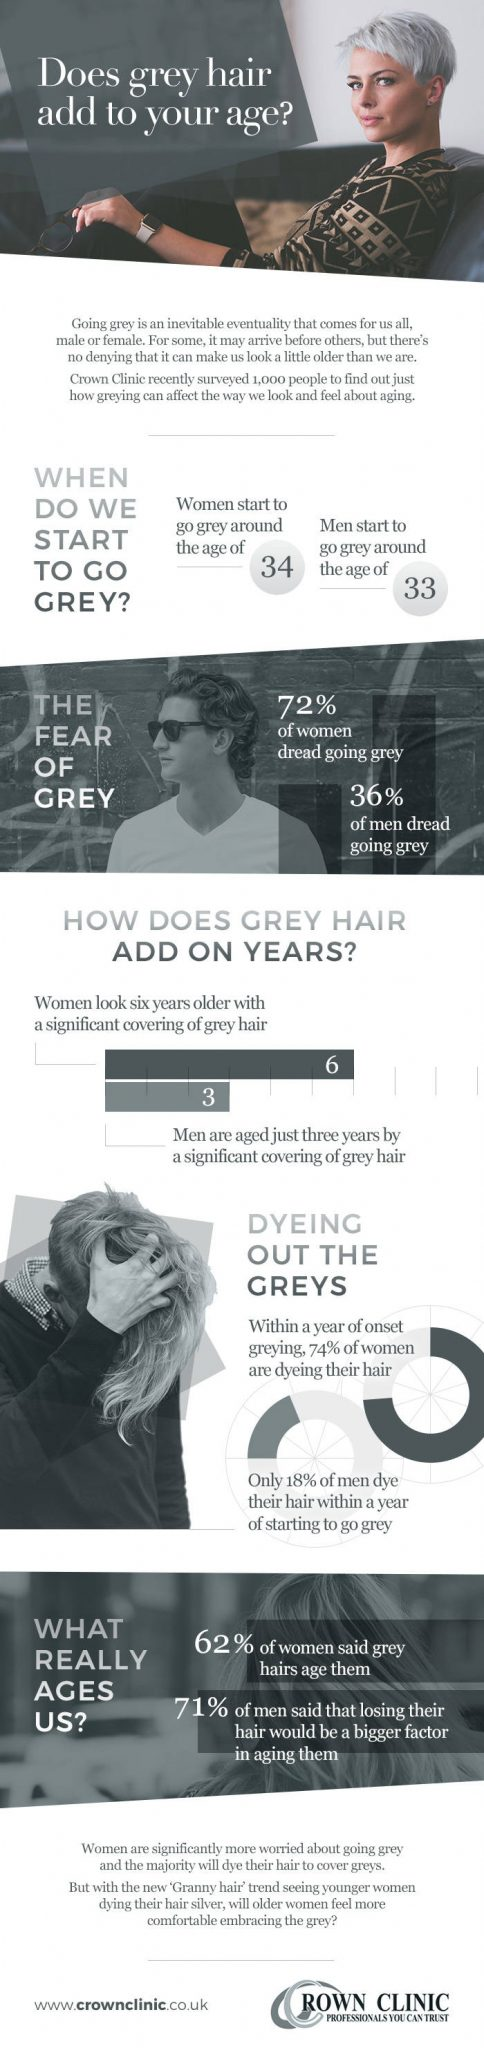 How are grey hairs adding to our age